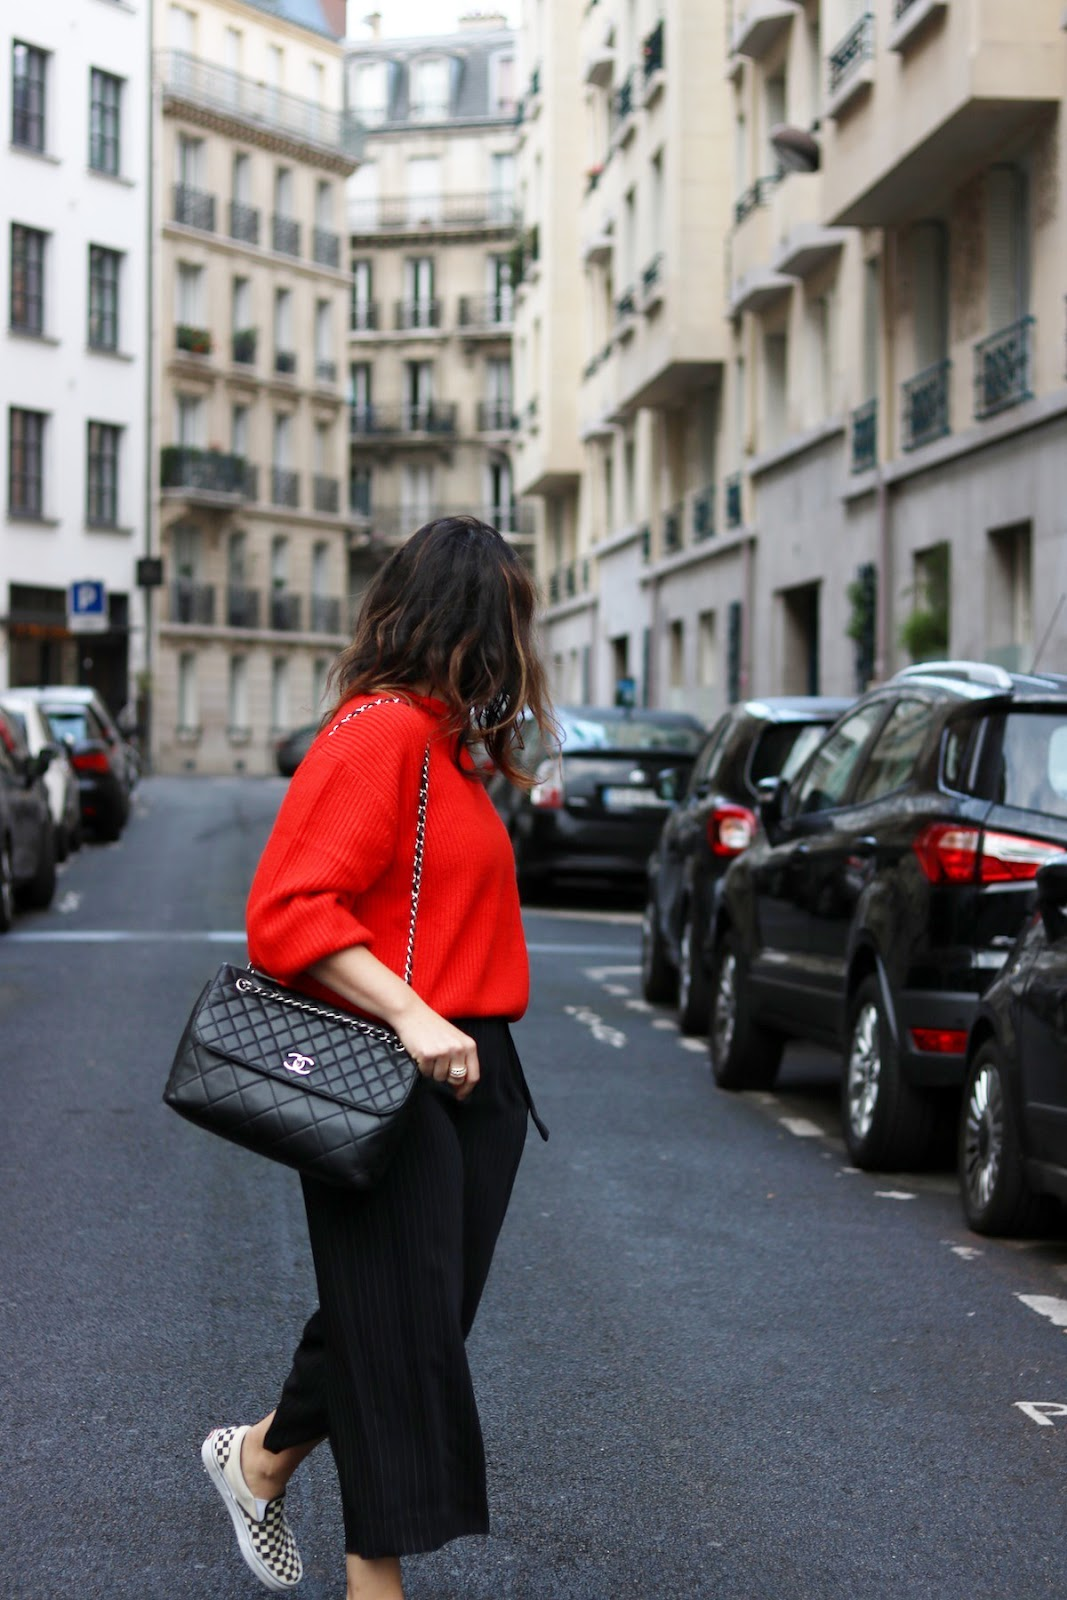 red hm sweater outfit le chateau pinstripe pants paris travel outfit vans checkered slip ons